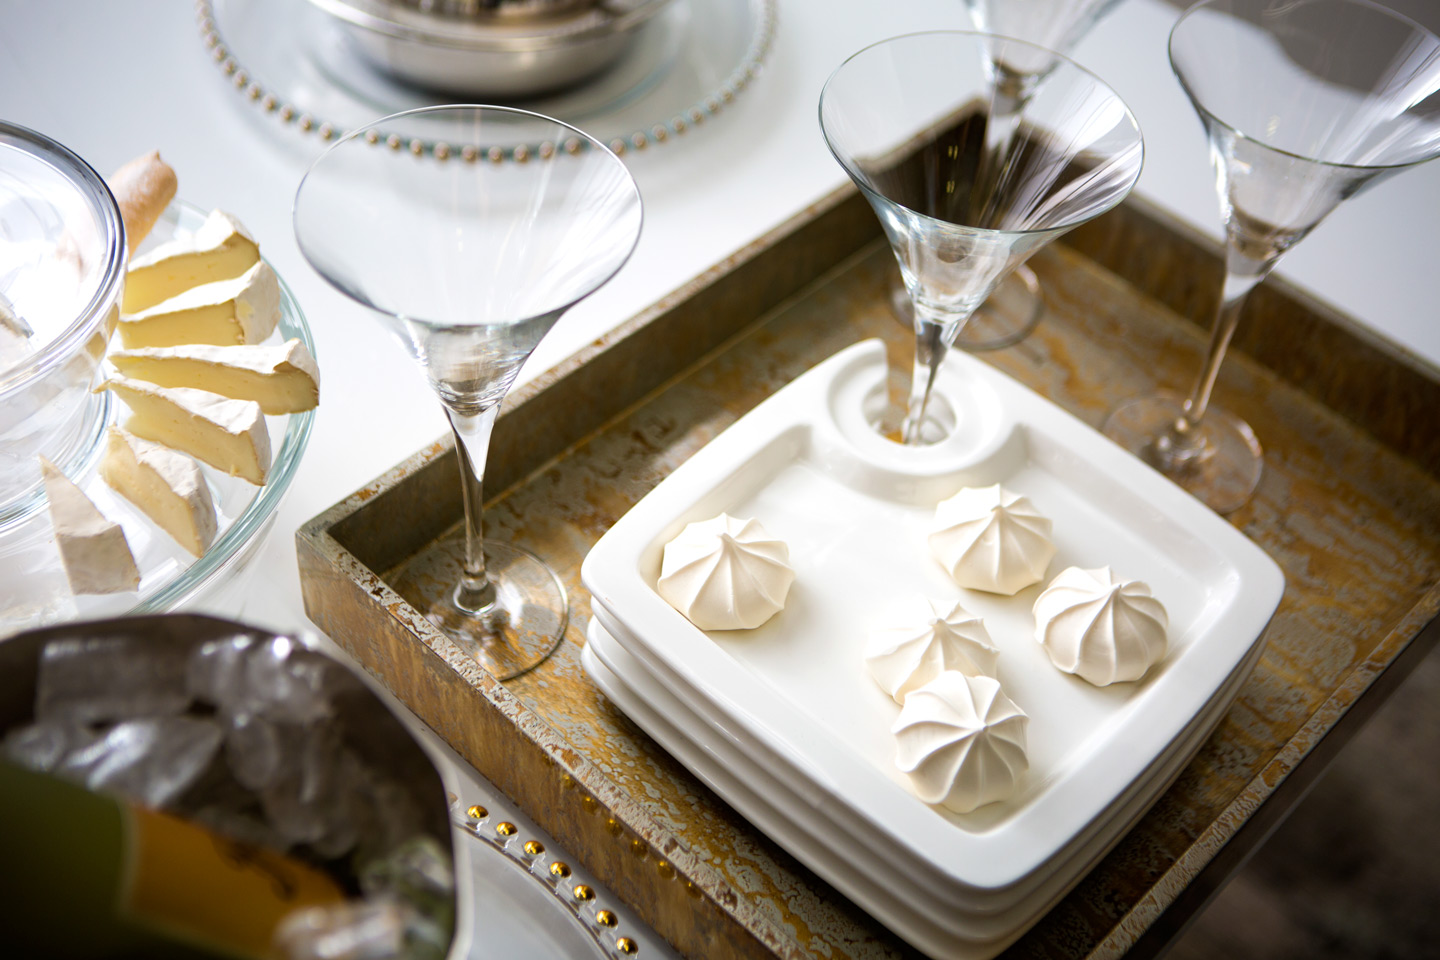 appetizer-plates-with-drink-holders.jpg